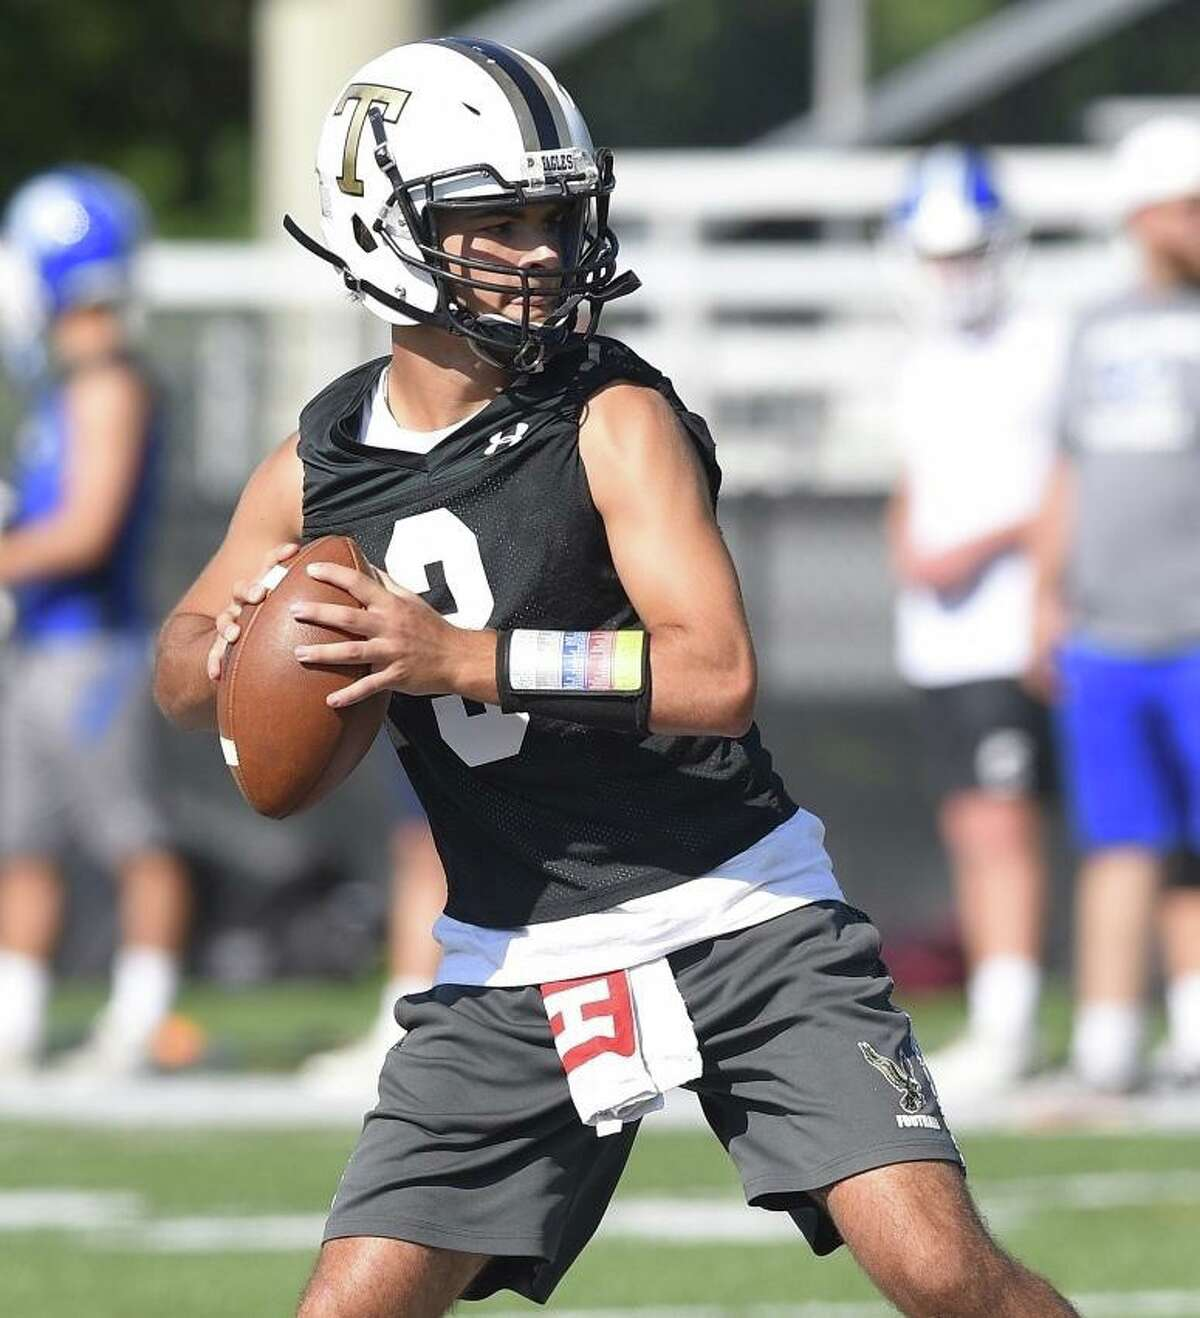 Trumbull quarterback Riley Simpson passes during the annual Rip It and Grip It tournament in summer 7-on-7 football scrimmages at New Canaan High School.